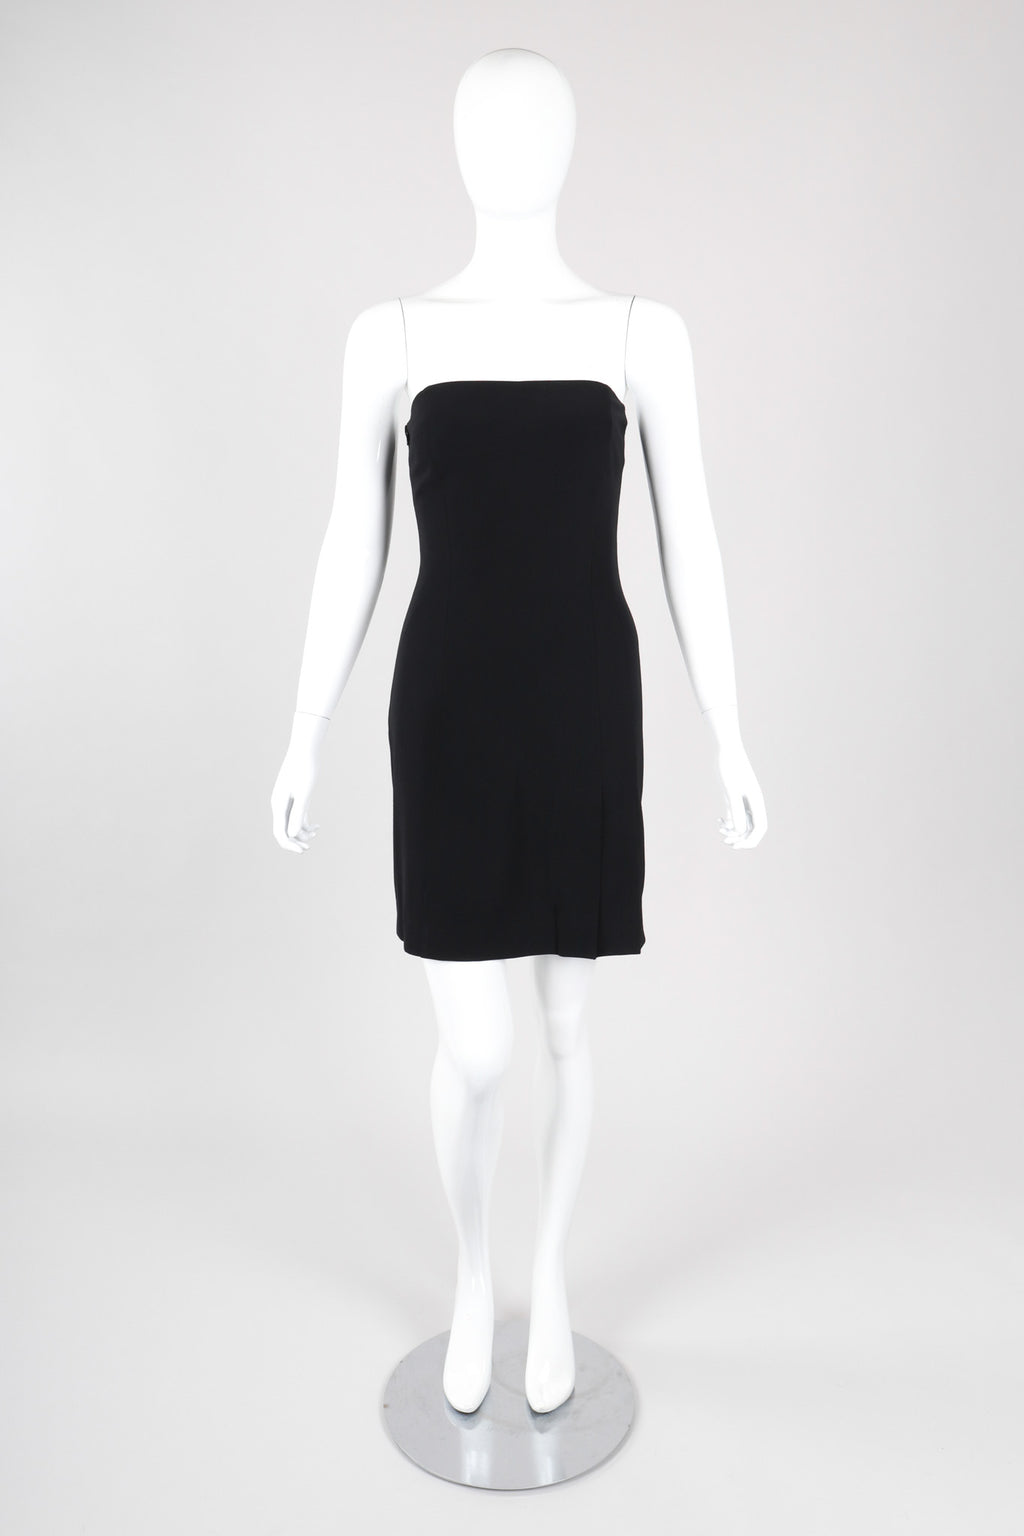 Recess Los Angeles Vintage Plein Sud 90s Minimal Strapless Minidress